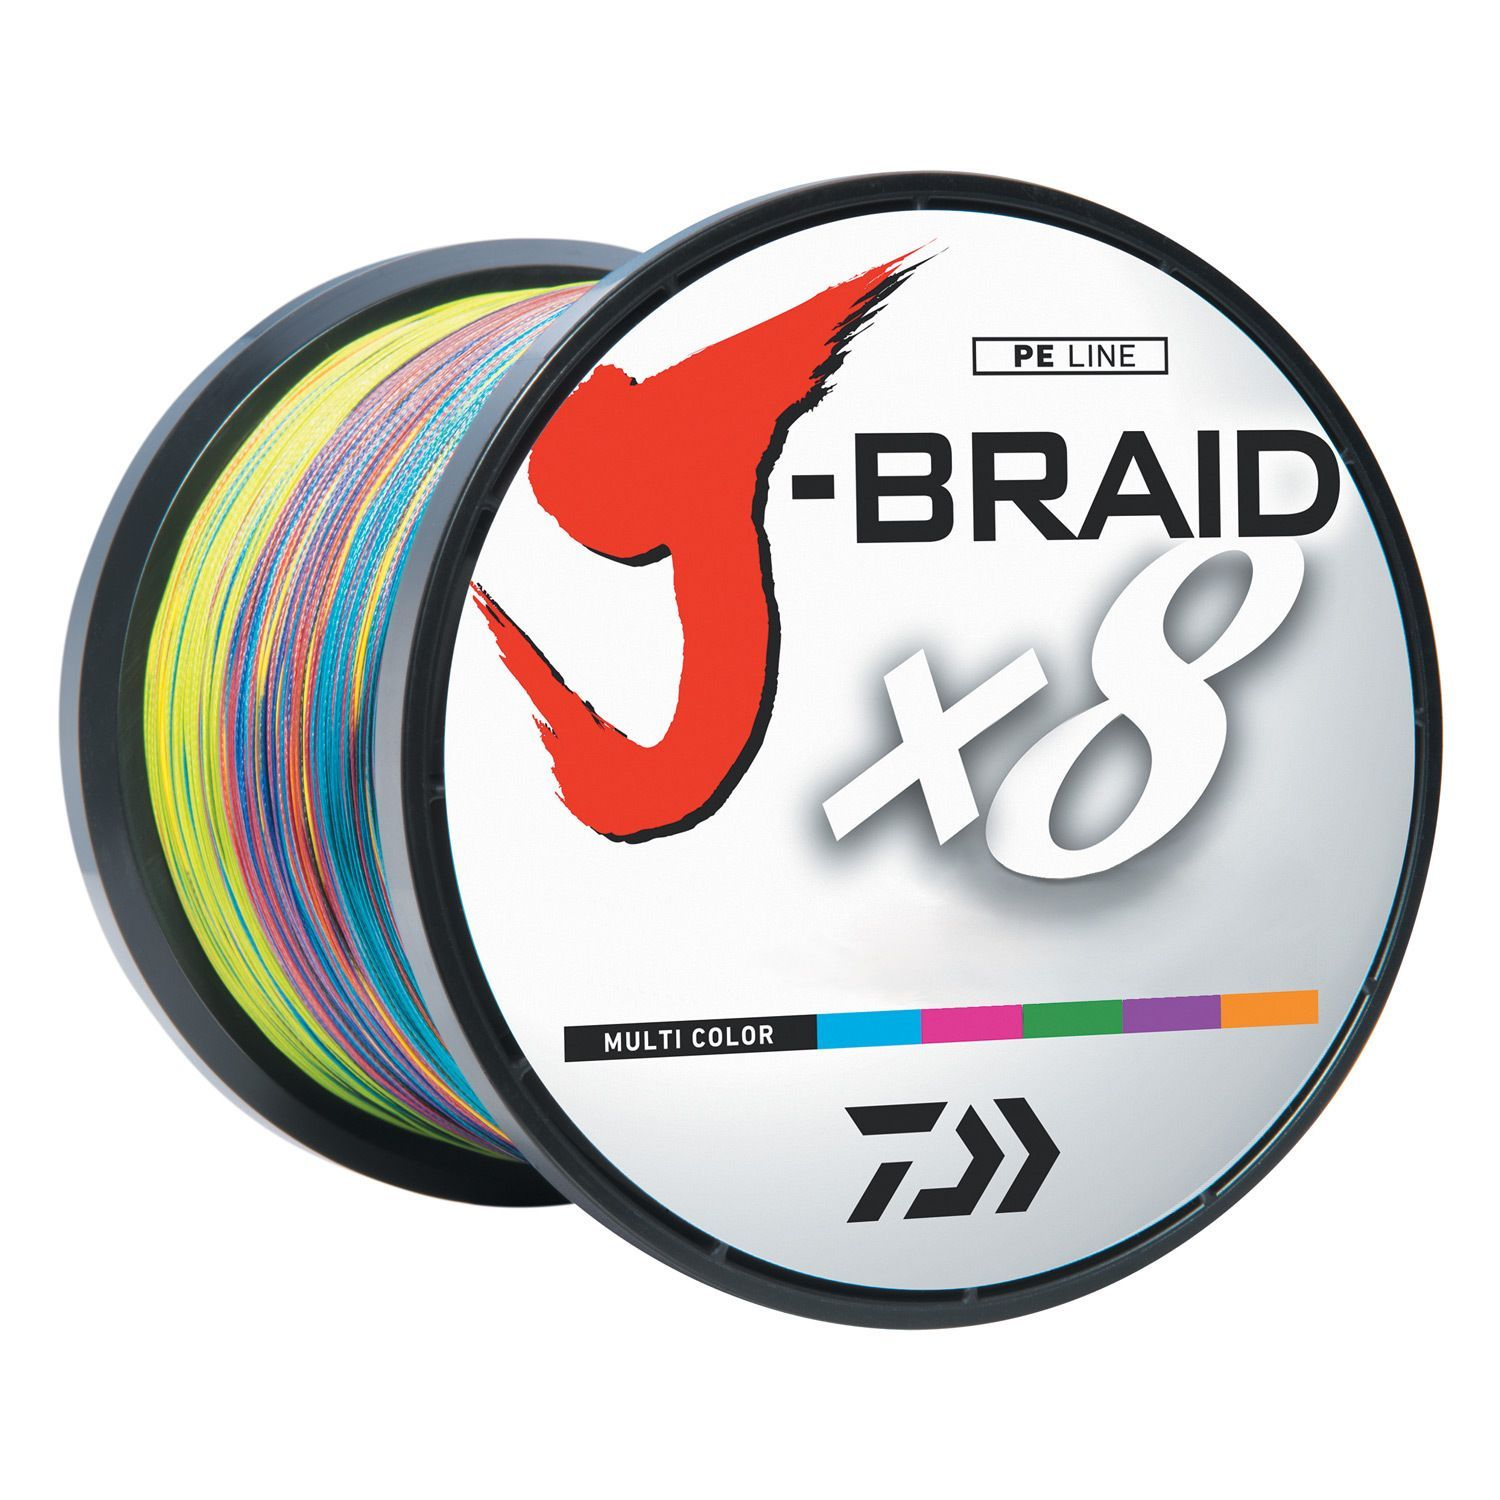 Daiwa J-Braid Multi-Color Fishing Line 1650 Yards | Fishing ...